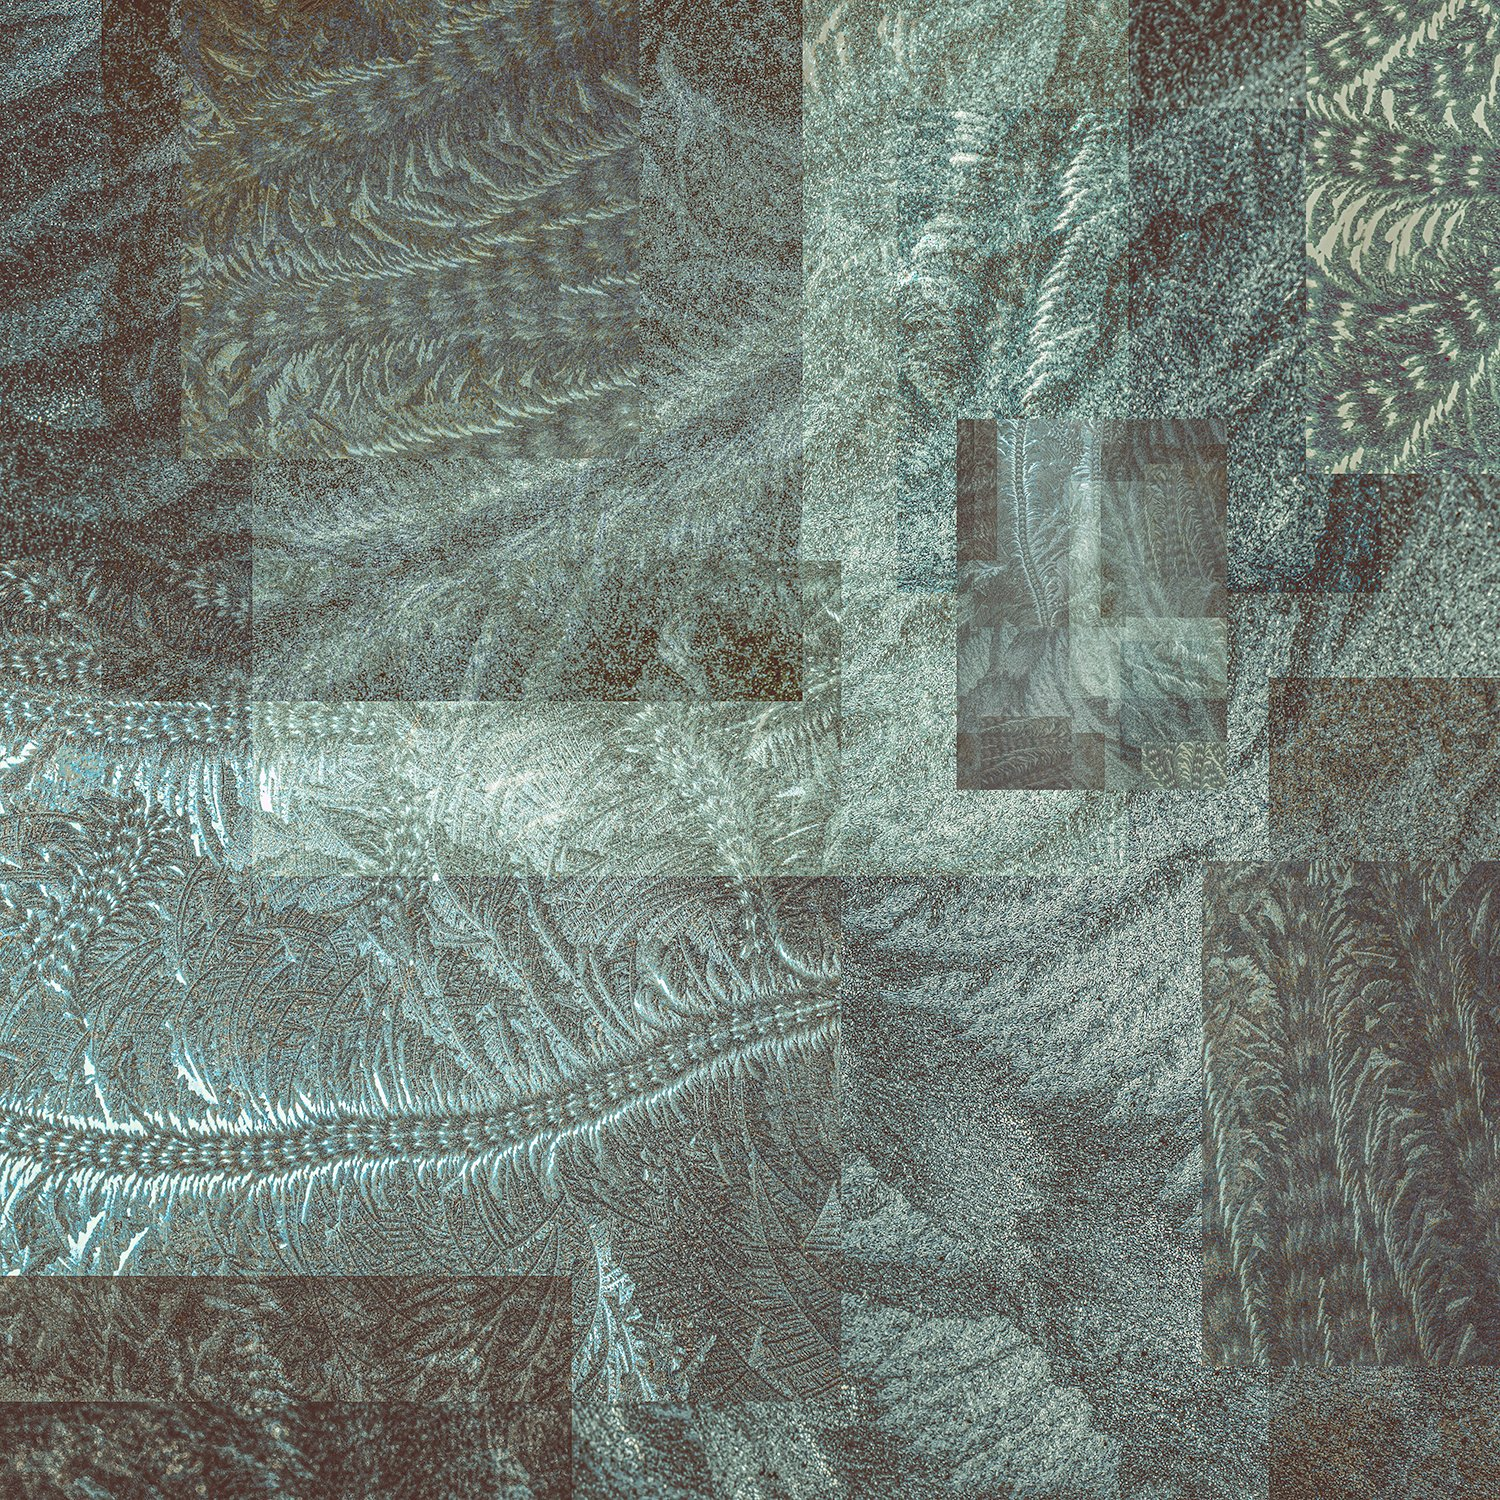 collage-shapes-textures-frost-patterns-pale-dark-green-pressed-glass-sage-fern-scroll